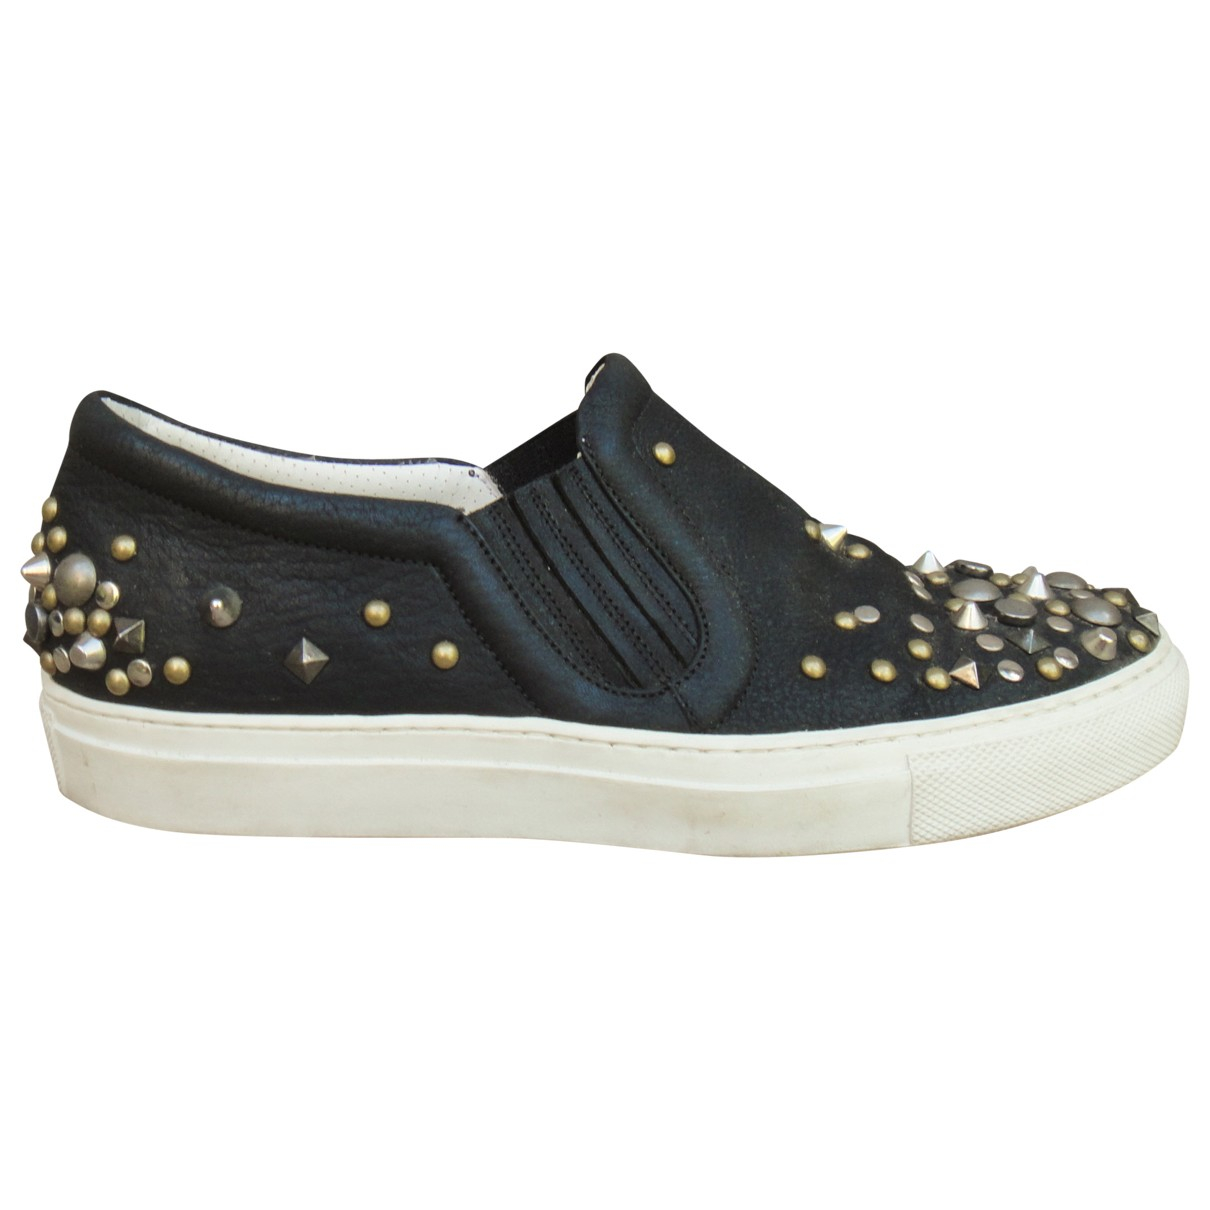 Sartore \N Black Leather Trainers for Women 36.5 EU